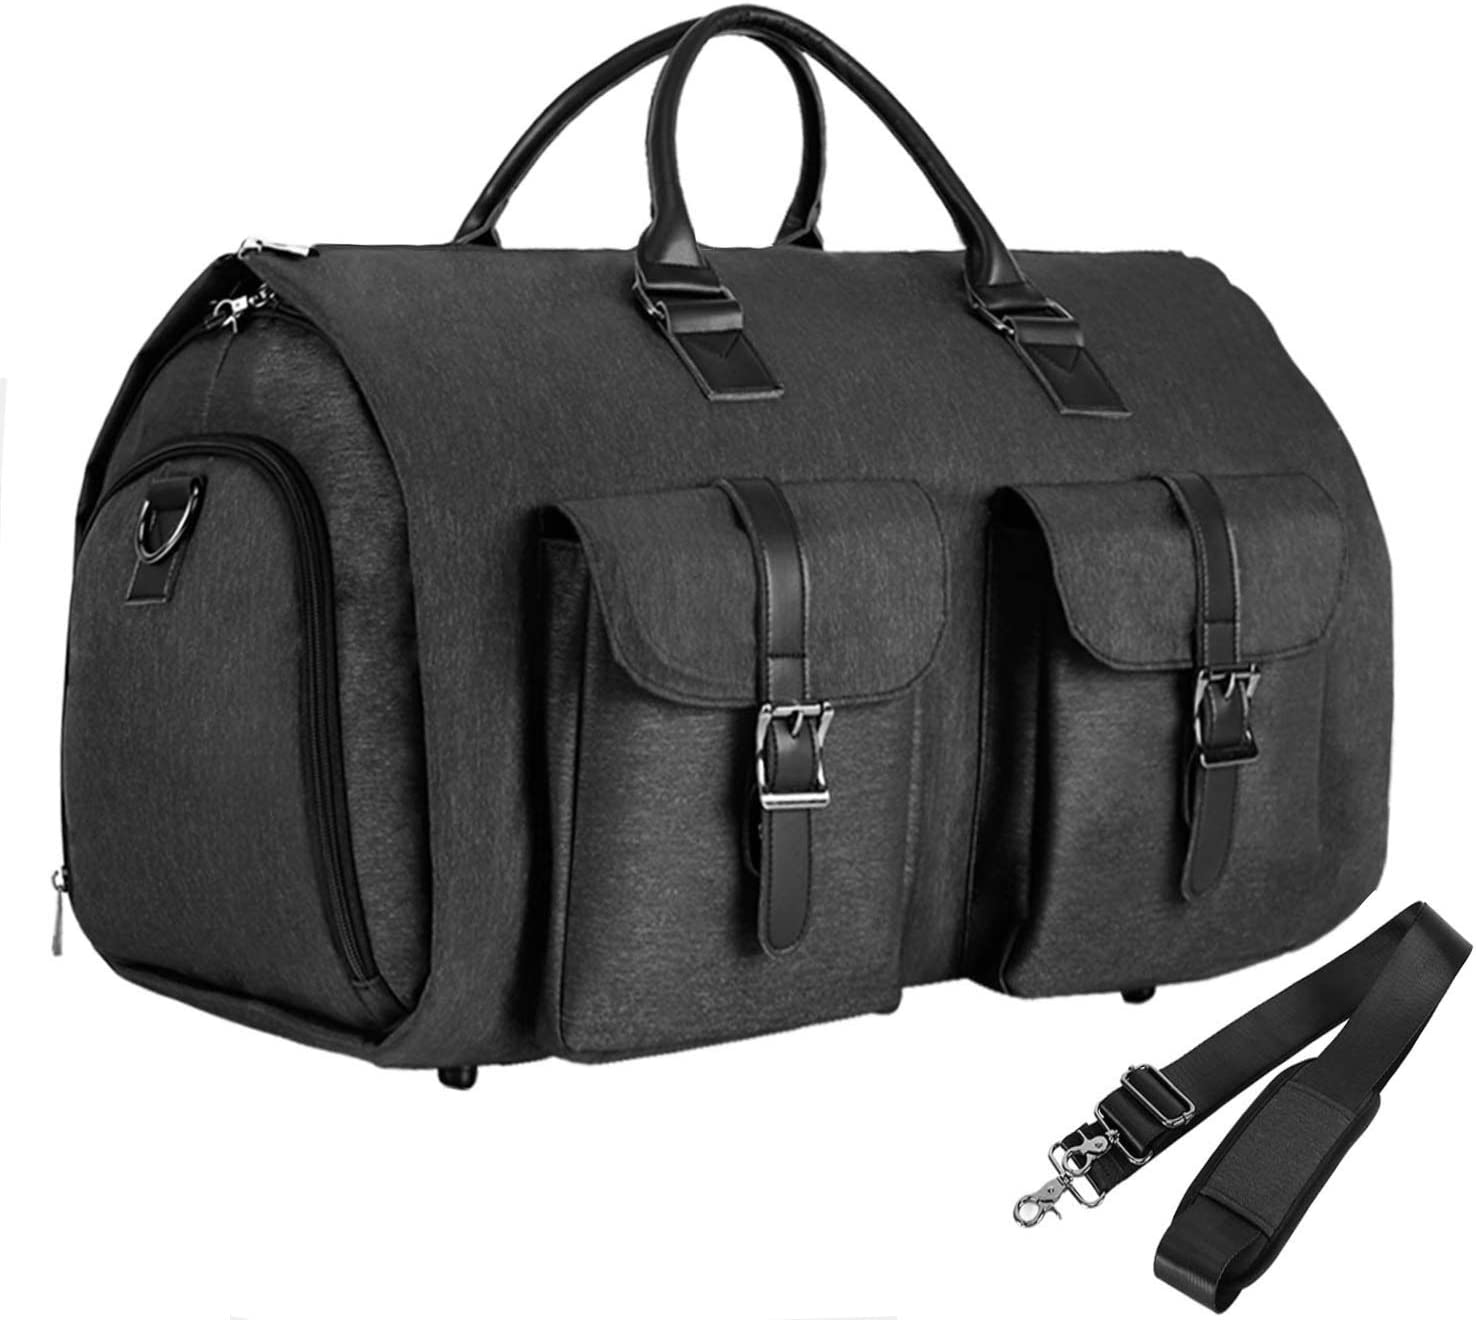 The Convertible Travel Garment Bag travel product recommended by Elliot Smith on Lifney.